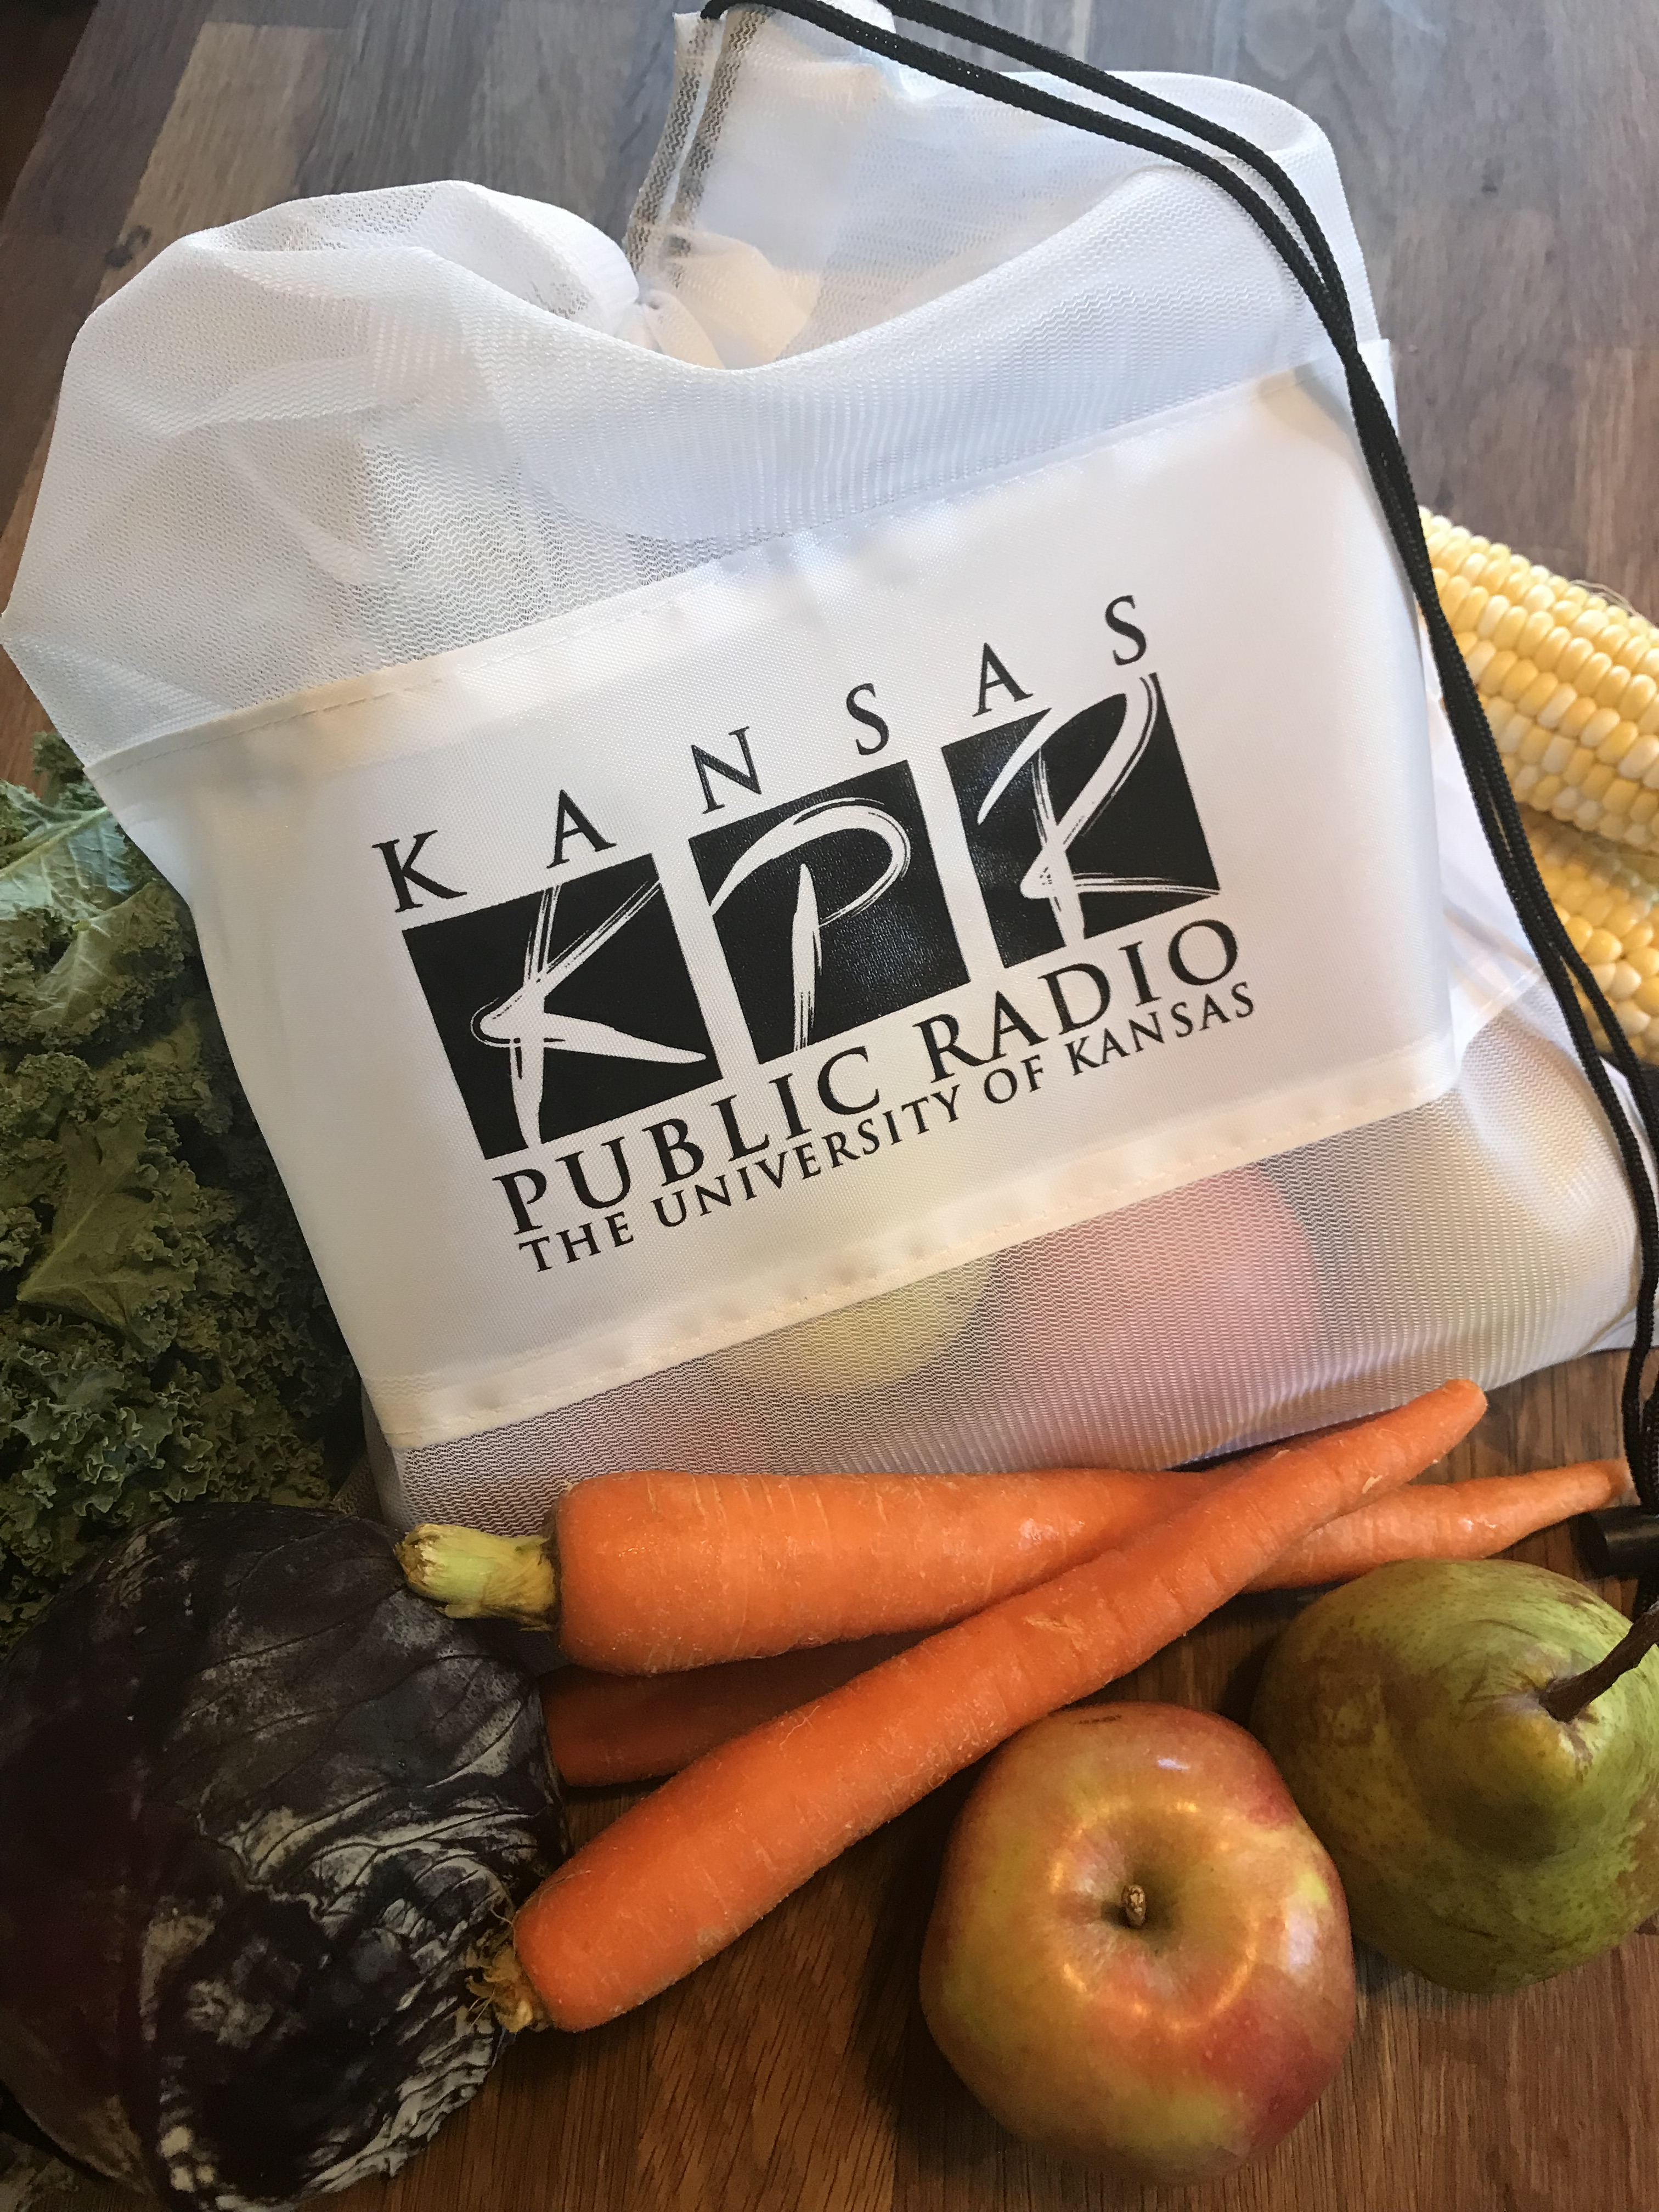 When you give $60+ on Saturday, 9/14, 7-10 a.m., you'll get KPR's reusable veggie bag, while supplies last.